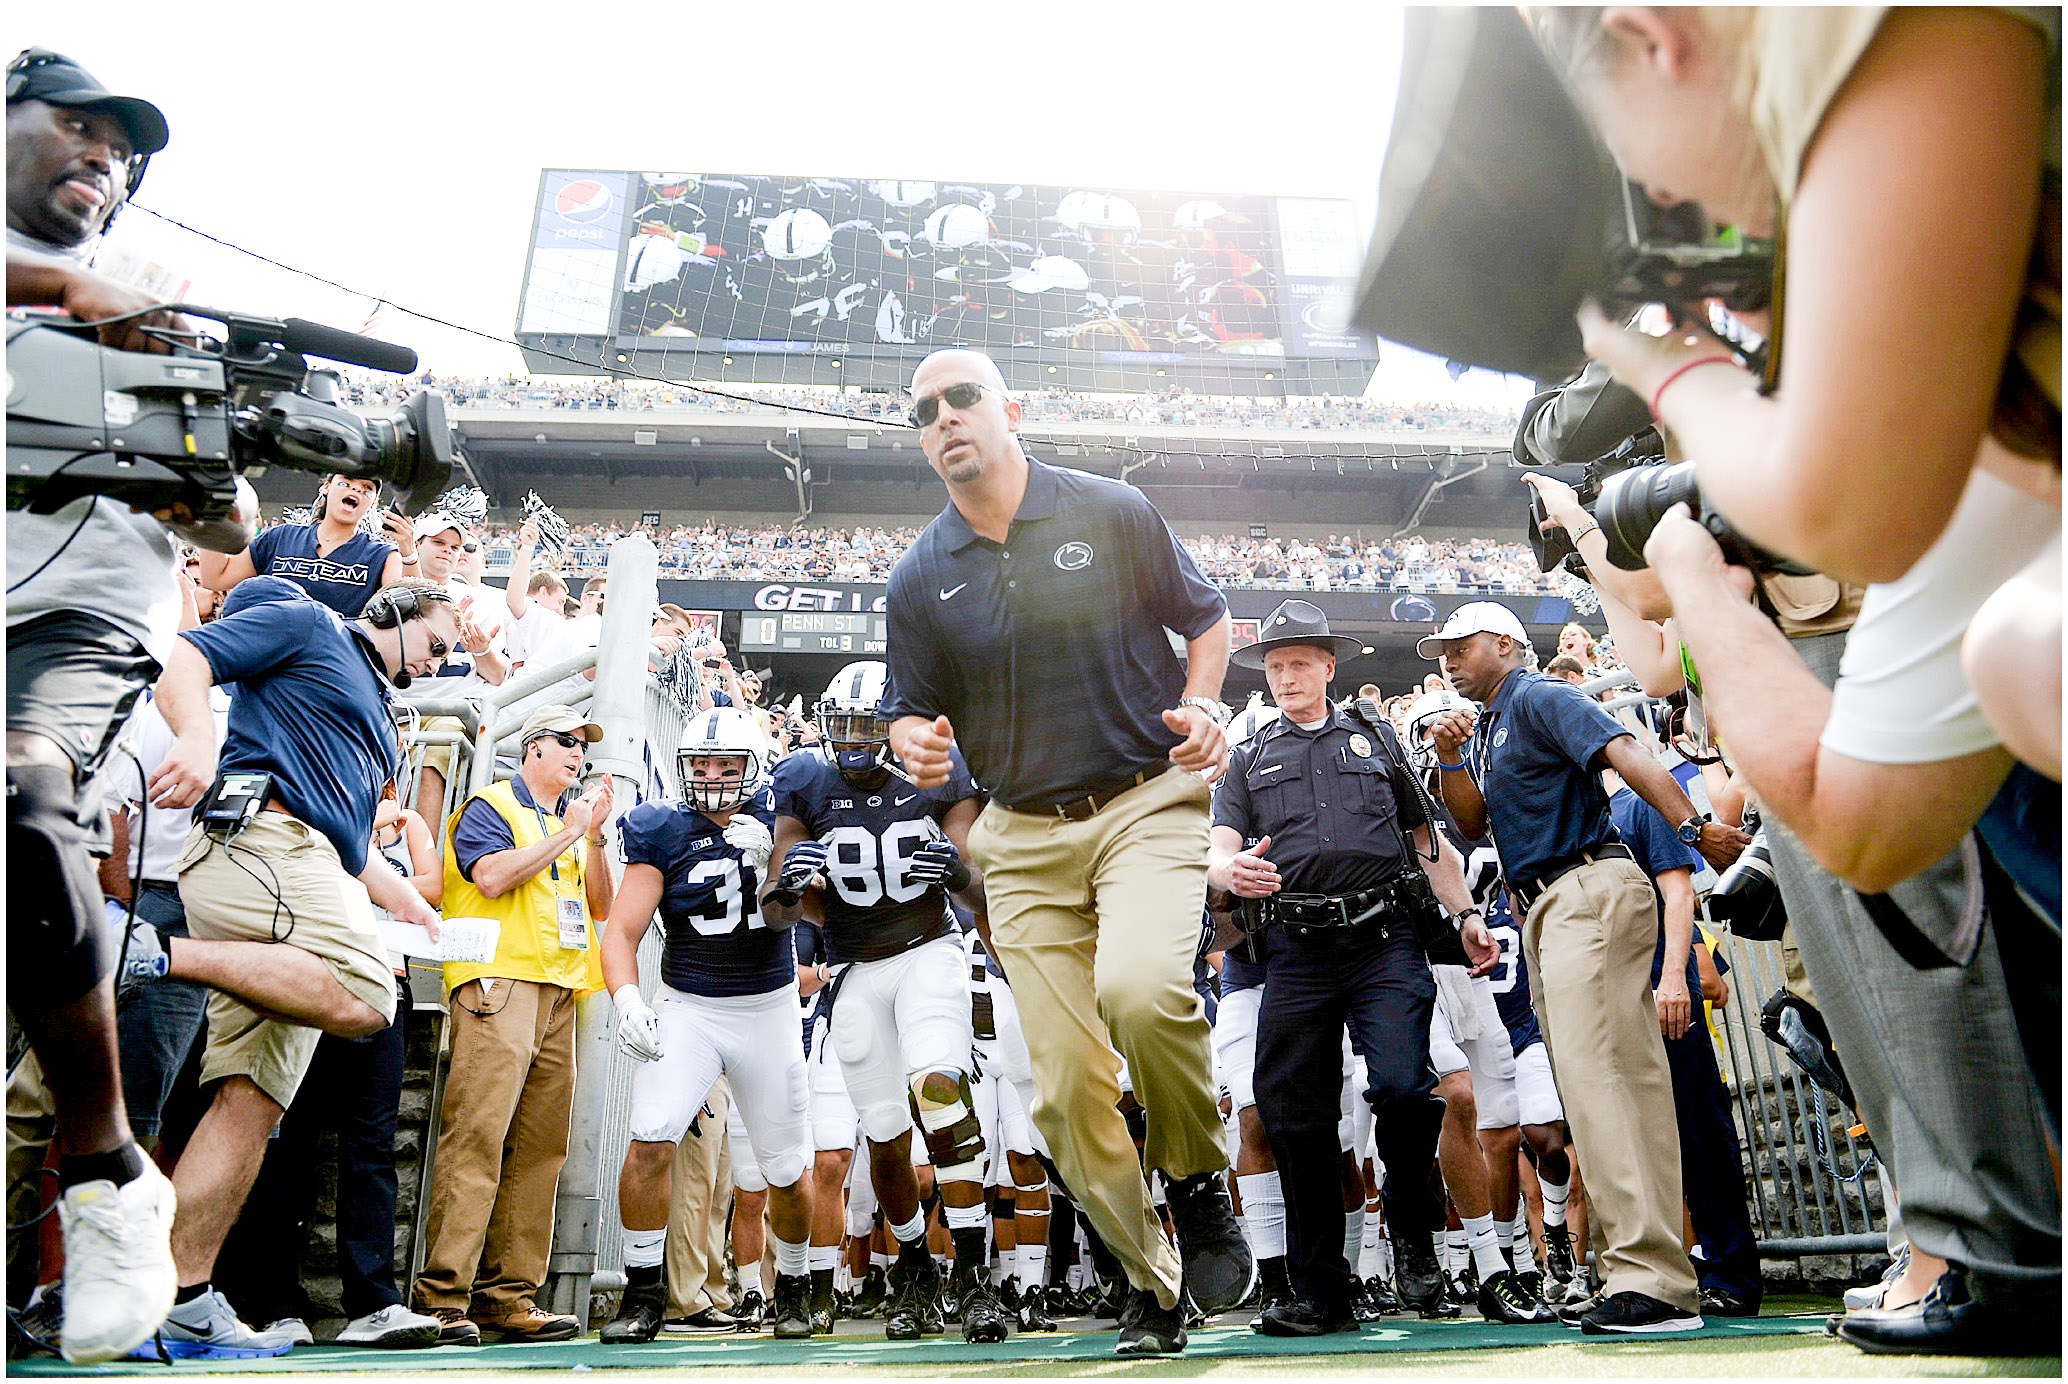 Head coach James Franklin leads his team onto the field for the first time on Saturday, September 6, 2014. Photo by Hannah Byrne